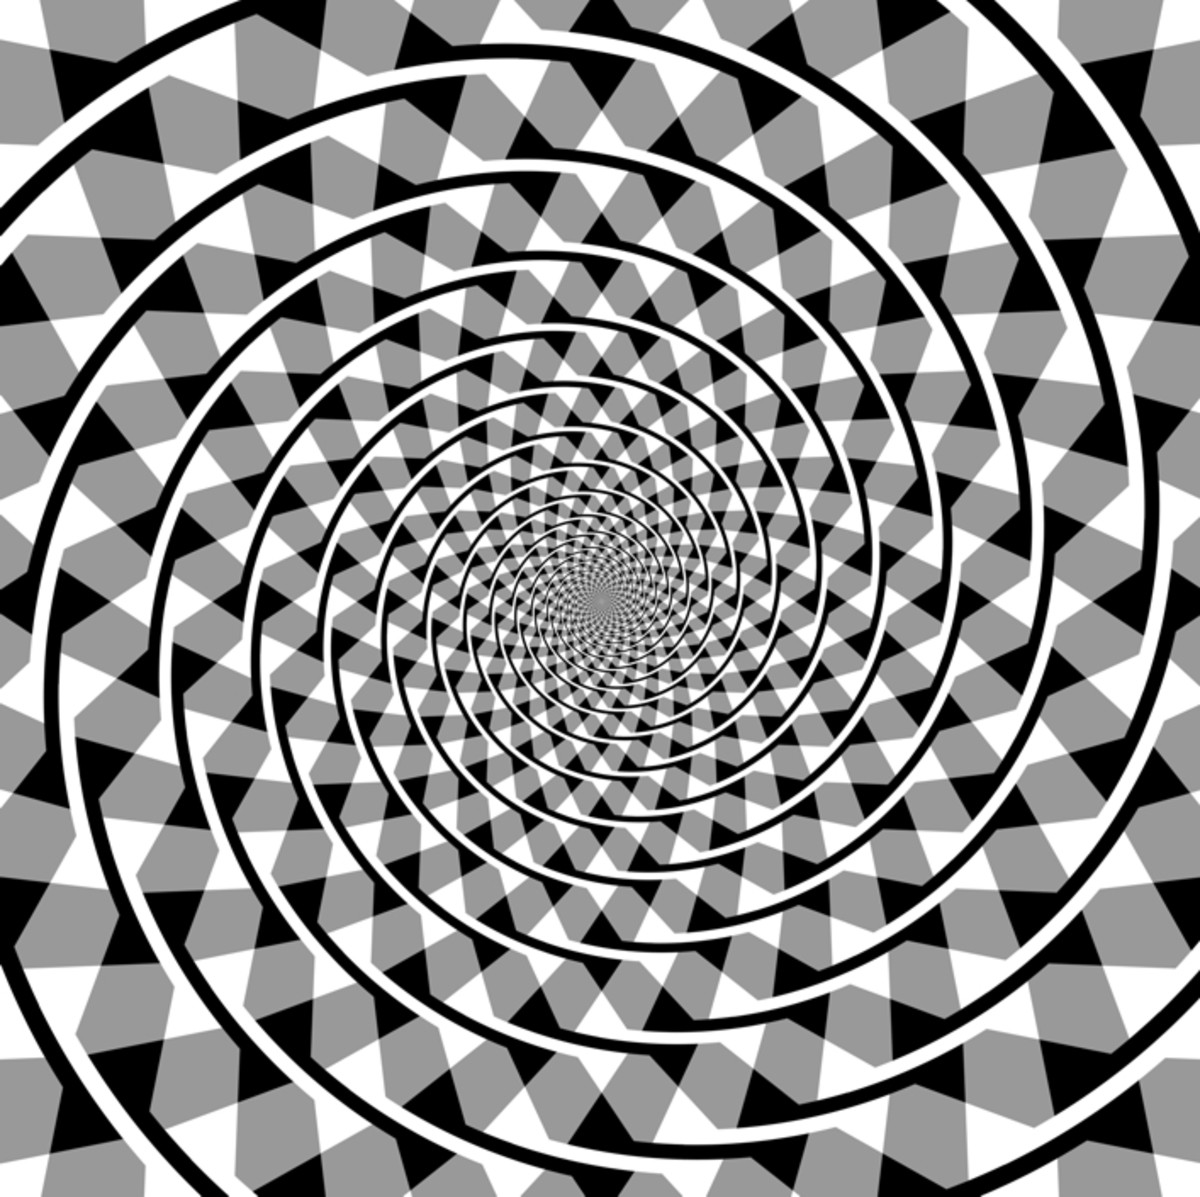 Fraser spiral optical illusion